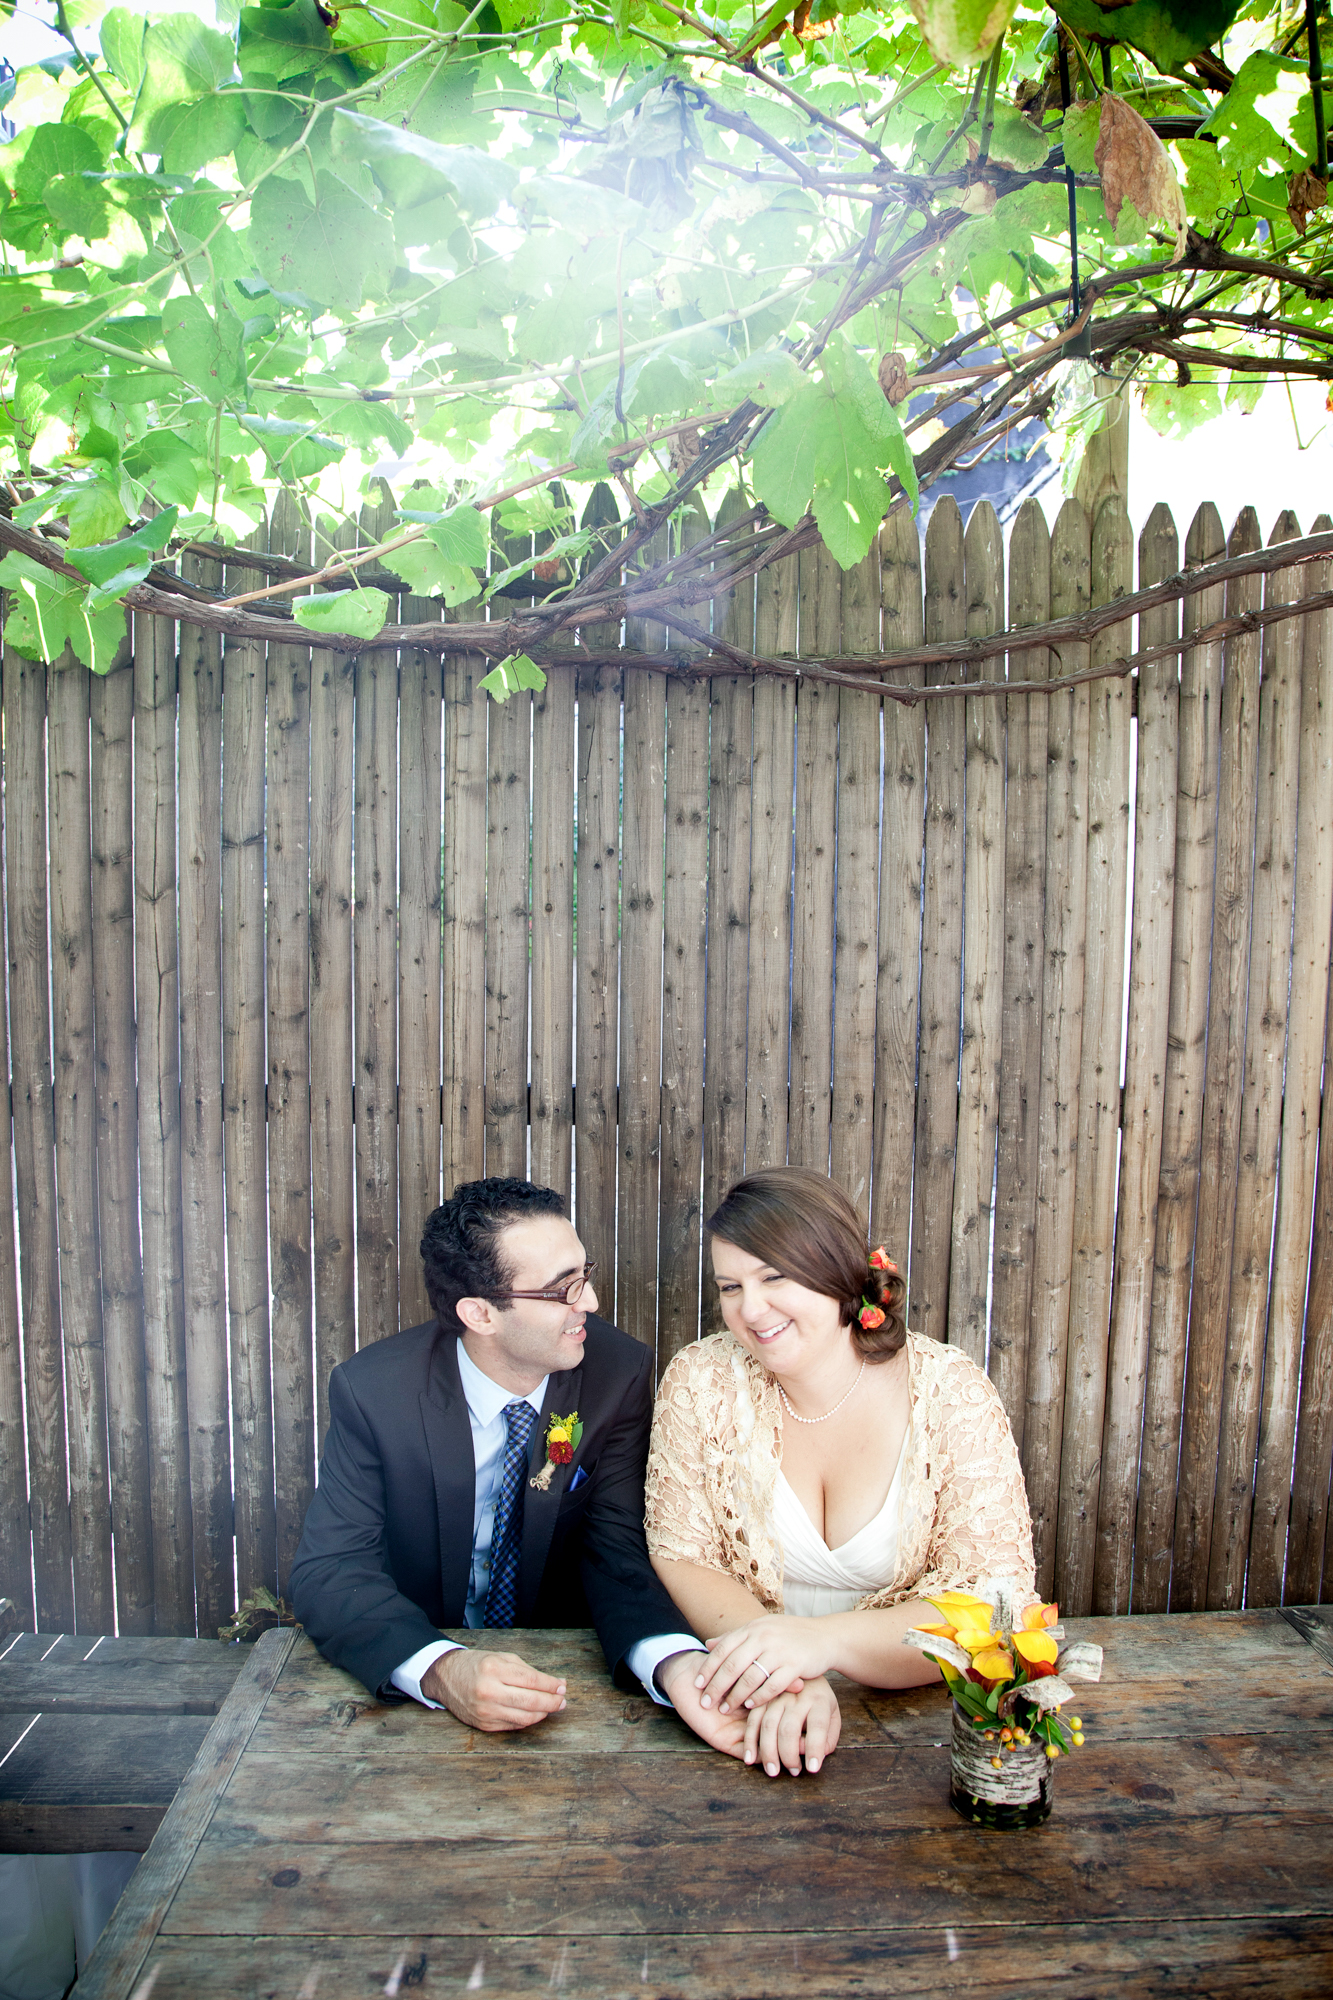 134_CarlyGaebe_SteadfastStudio_WeddingPhotography_NewYork_Brooklyn_CarollGardens_Frankies457Spuntino_Outdoor_Backyard_Summer_Bride_Groom_Flowers.jpg